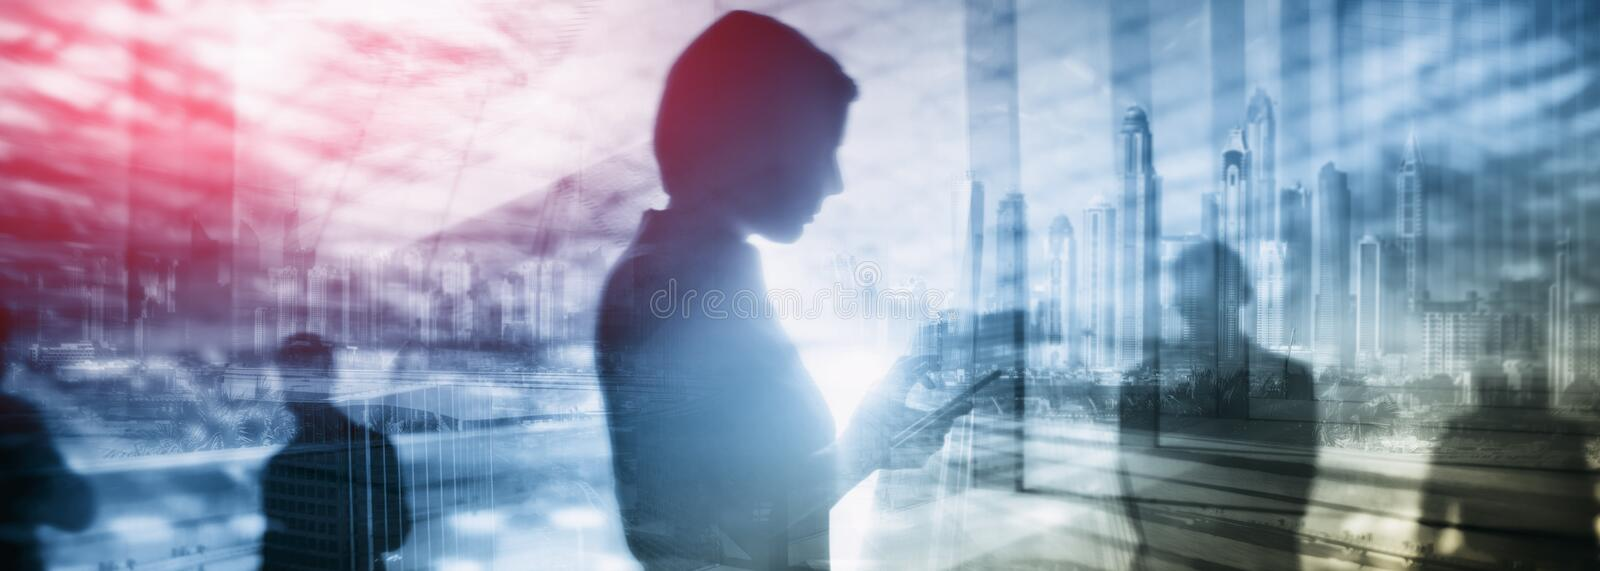 Exclusive business background, girl with phone on city background. Hand holding mobile smartphone with white screen blank at city light at night stock image